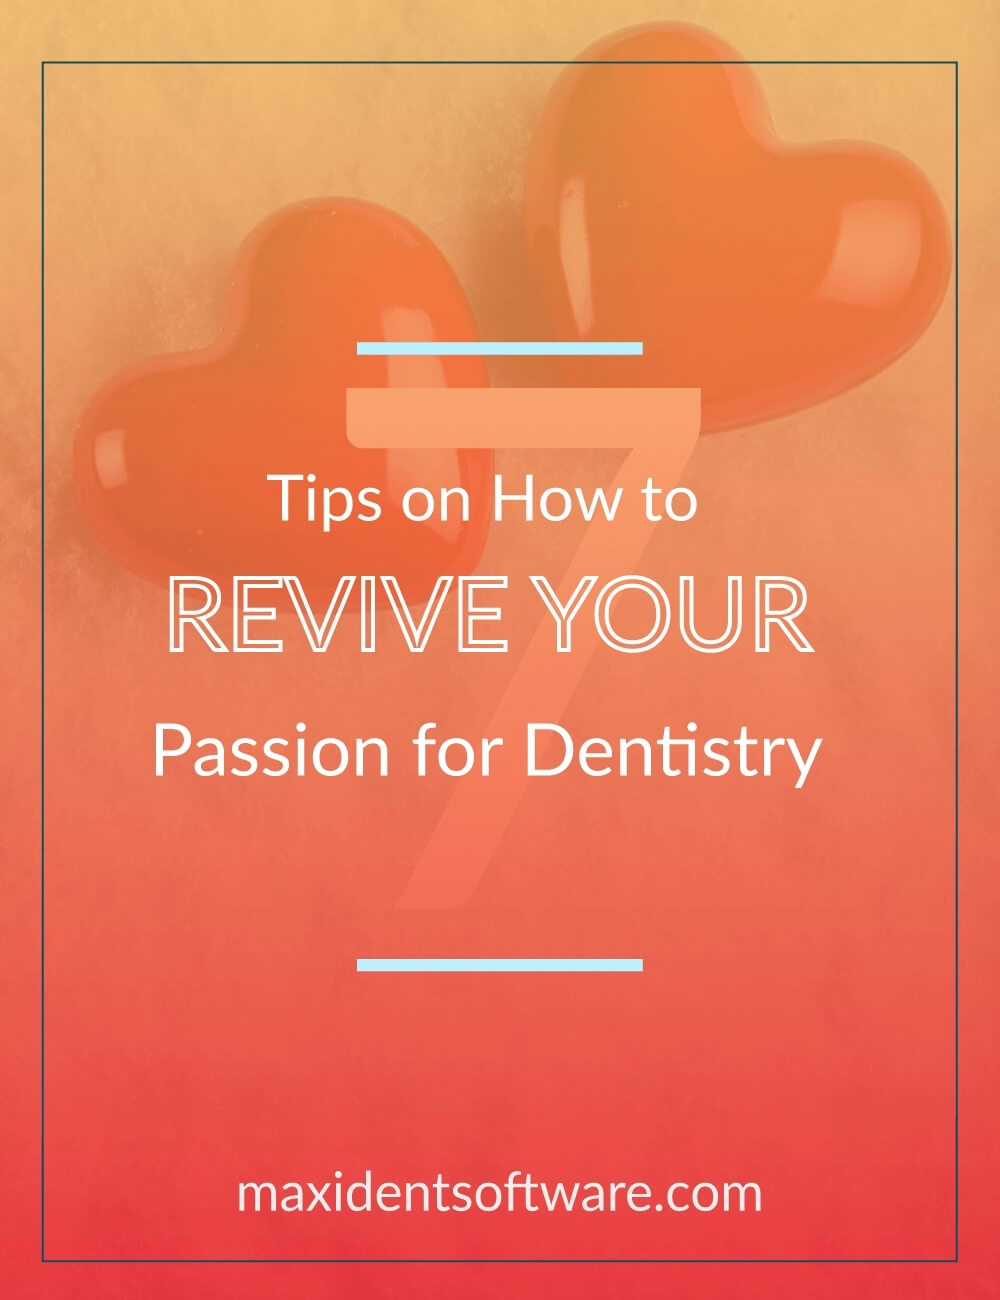 7 Tips on How to Revive Your Passion for Dentistry